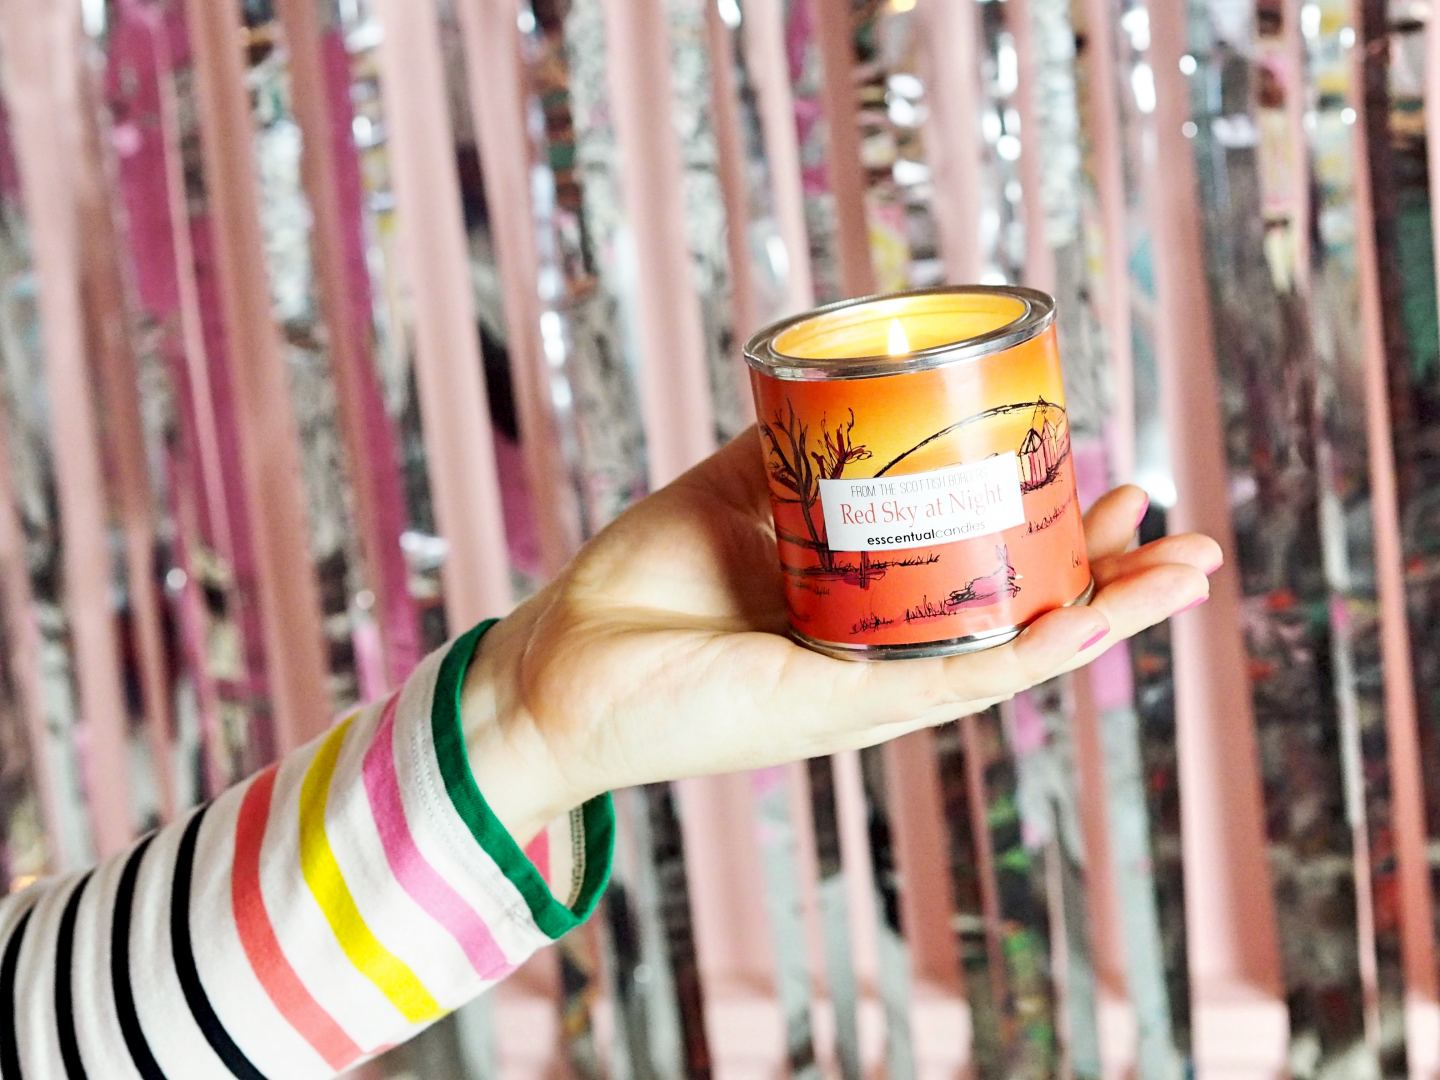 esscentual candles red sky at night candle